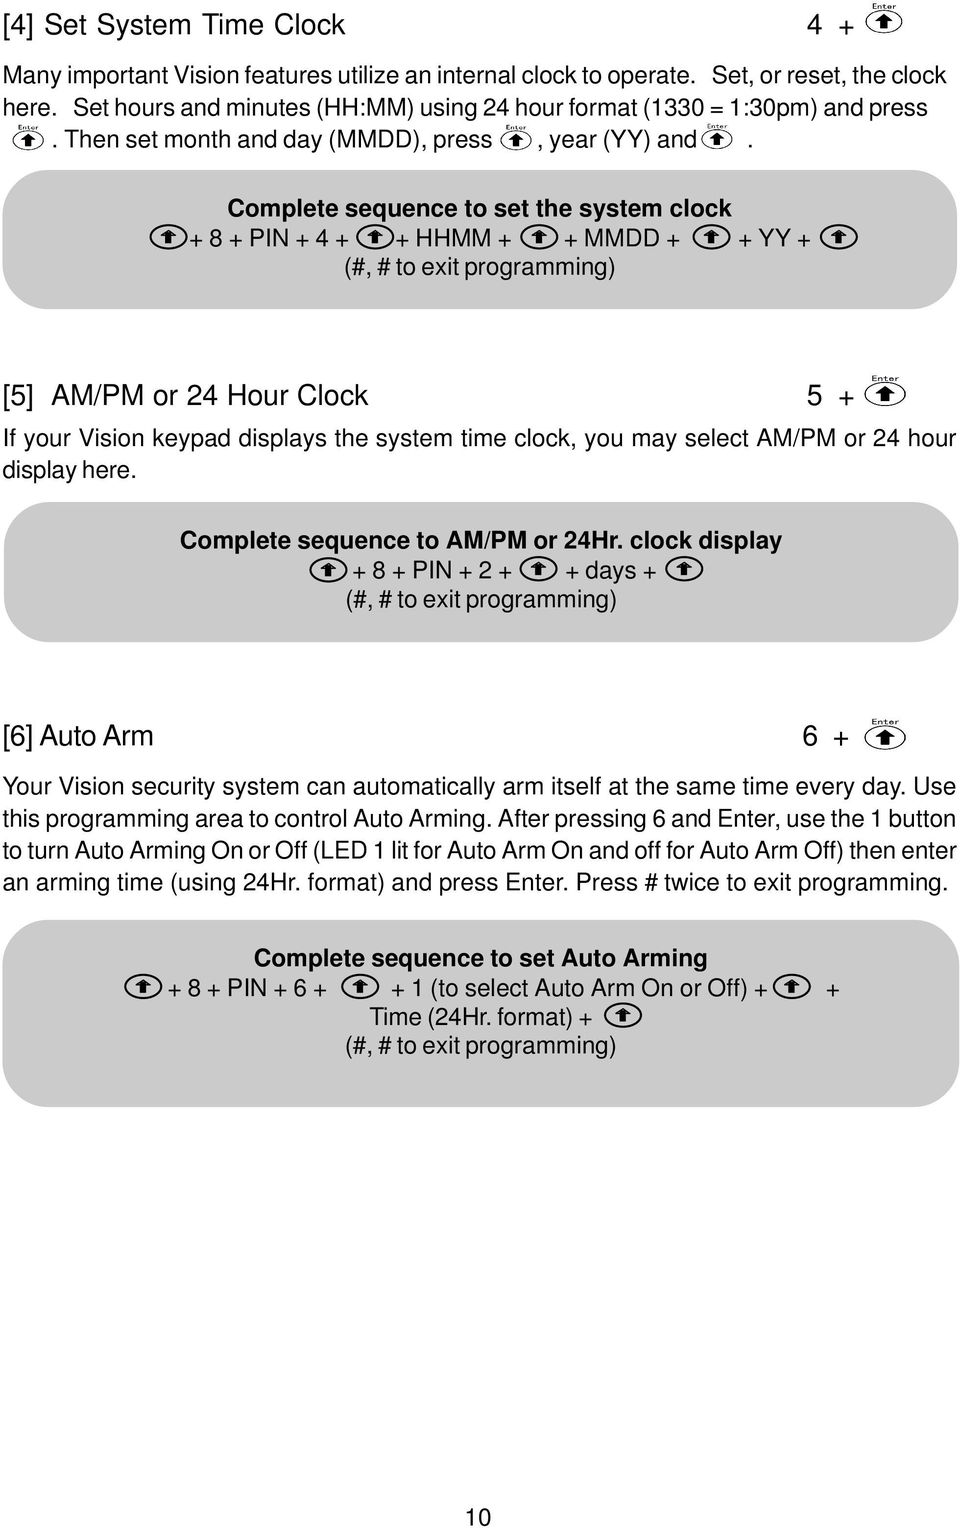 Complete sequence to set the system clock + 8 + PIN + 4 + + HHMM + + MMDD + + YY + [5] AM/PM or 24 Hour Clock 5 + If your Vision keypad displays the system time clock, you may select AM/PM or 24 hour